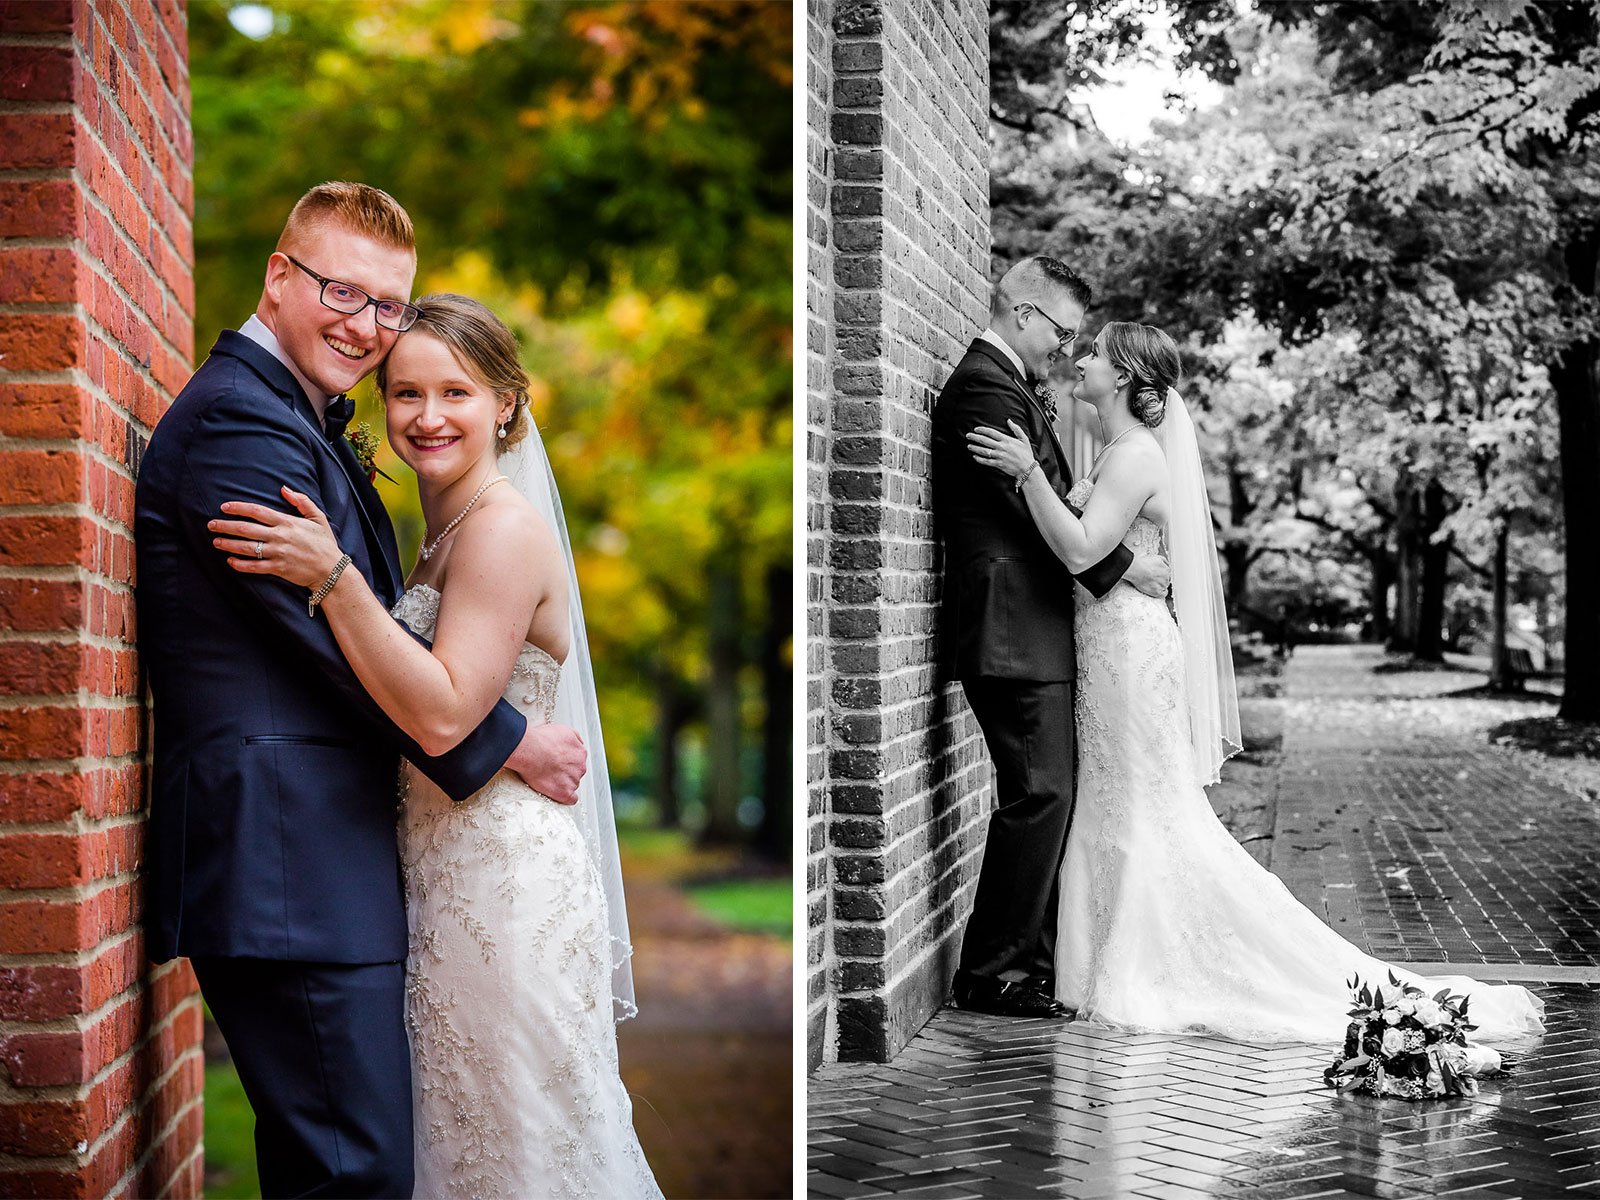 Eric_and_Christy_Photography_Blog_Wedding_Erica_Mike-59-60